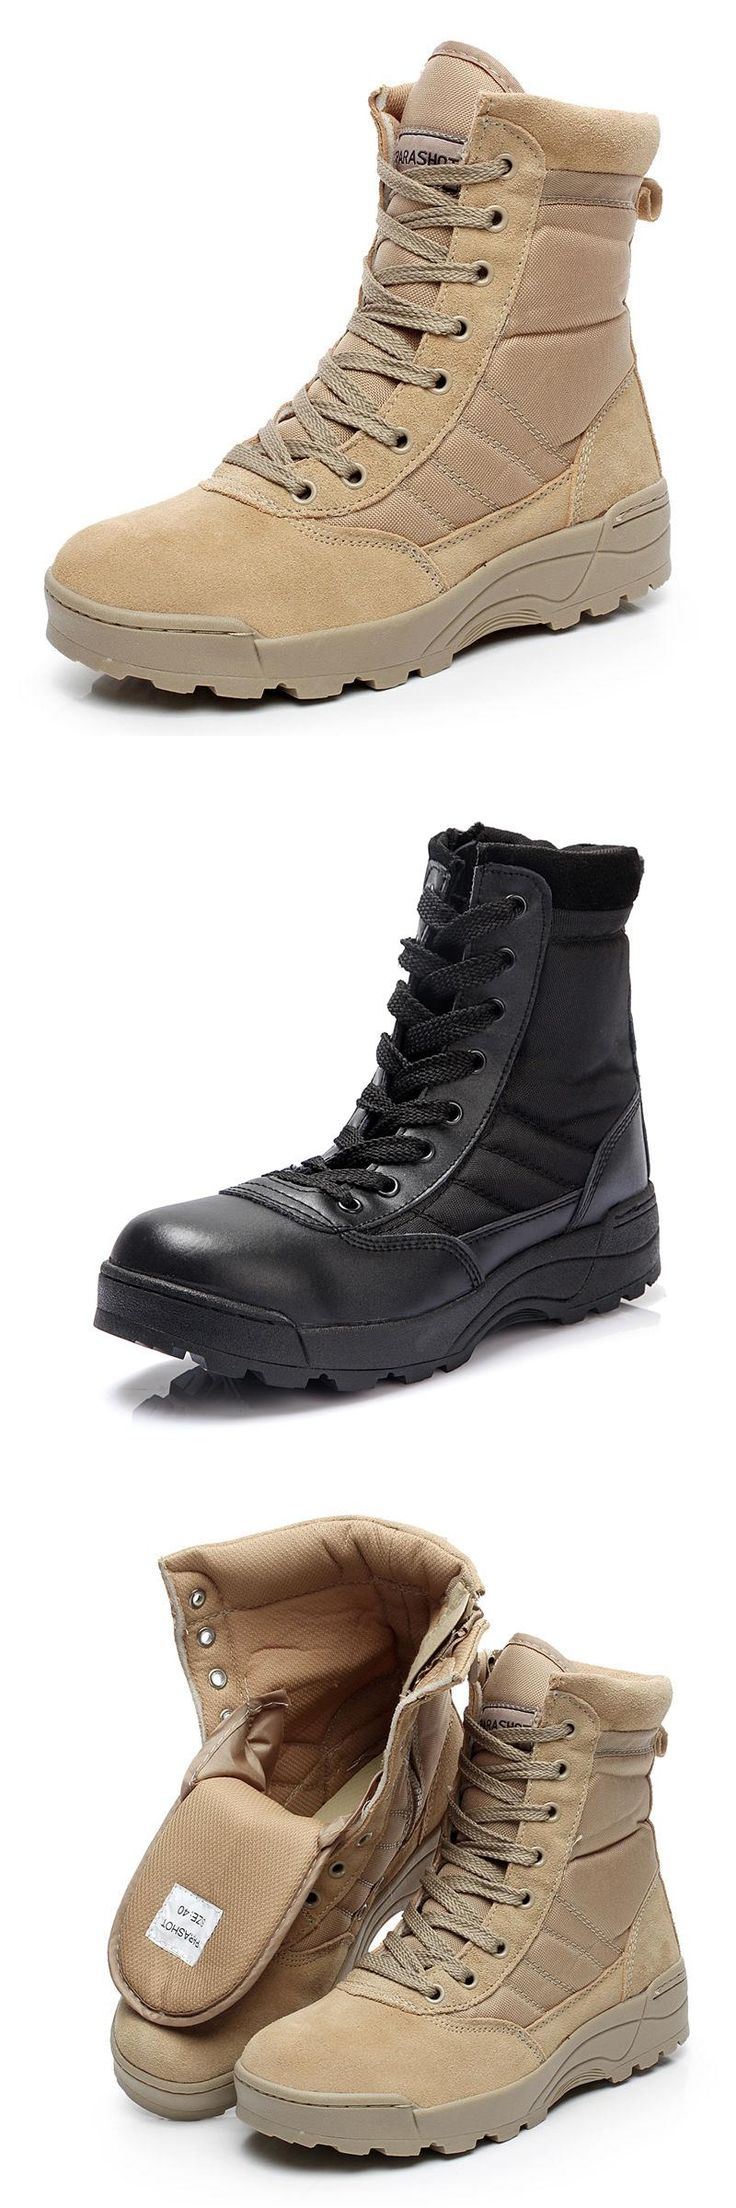 [Visit to Buy] SWAT Military Tactical Desert Boots Men Fashion Army Combat Boots Summer Outdoor Hiking Climbing safety Shoes Plus Size 38-47 #Advertisement